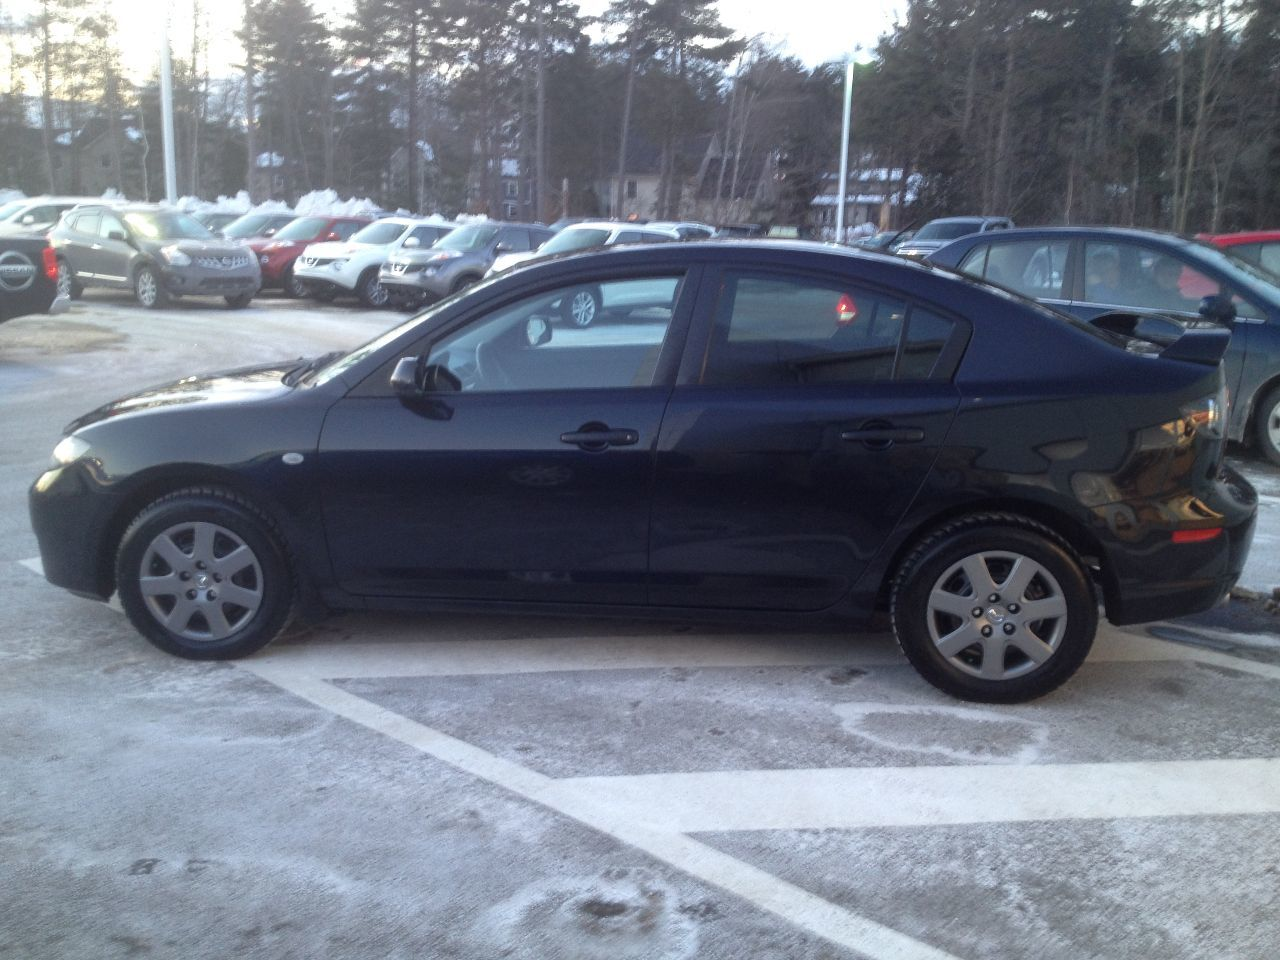 Used 2008 Mazda Mazda3 Gx In Kentville Inventory 3 Fuel Filter Location Img 2